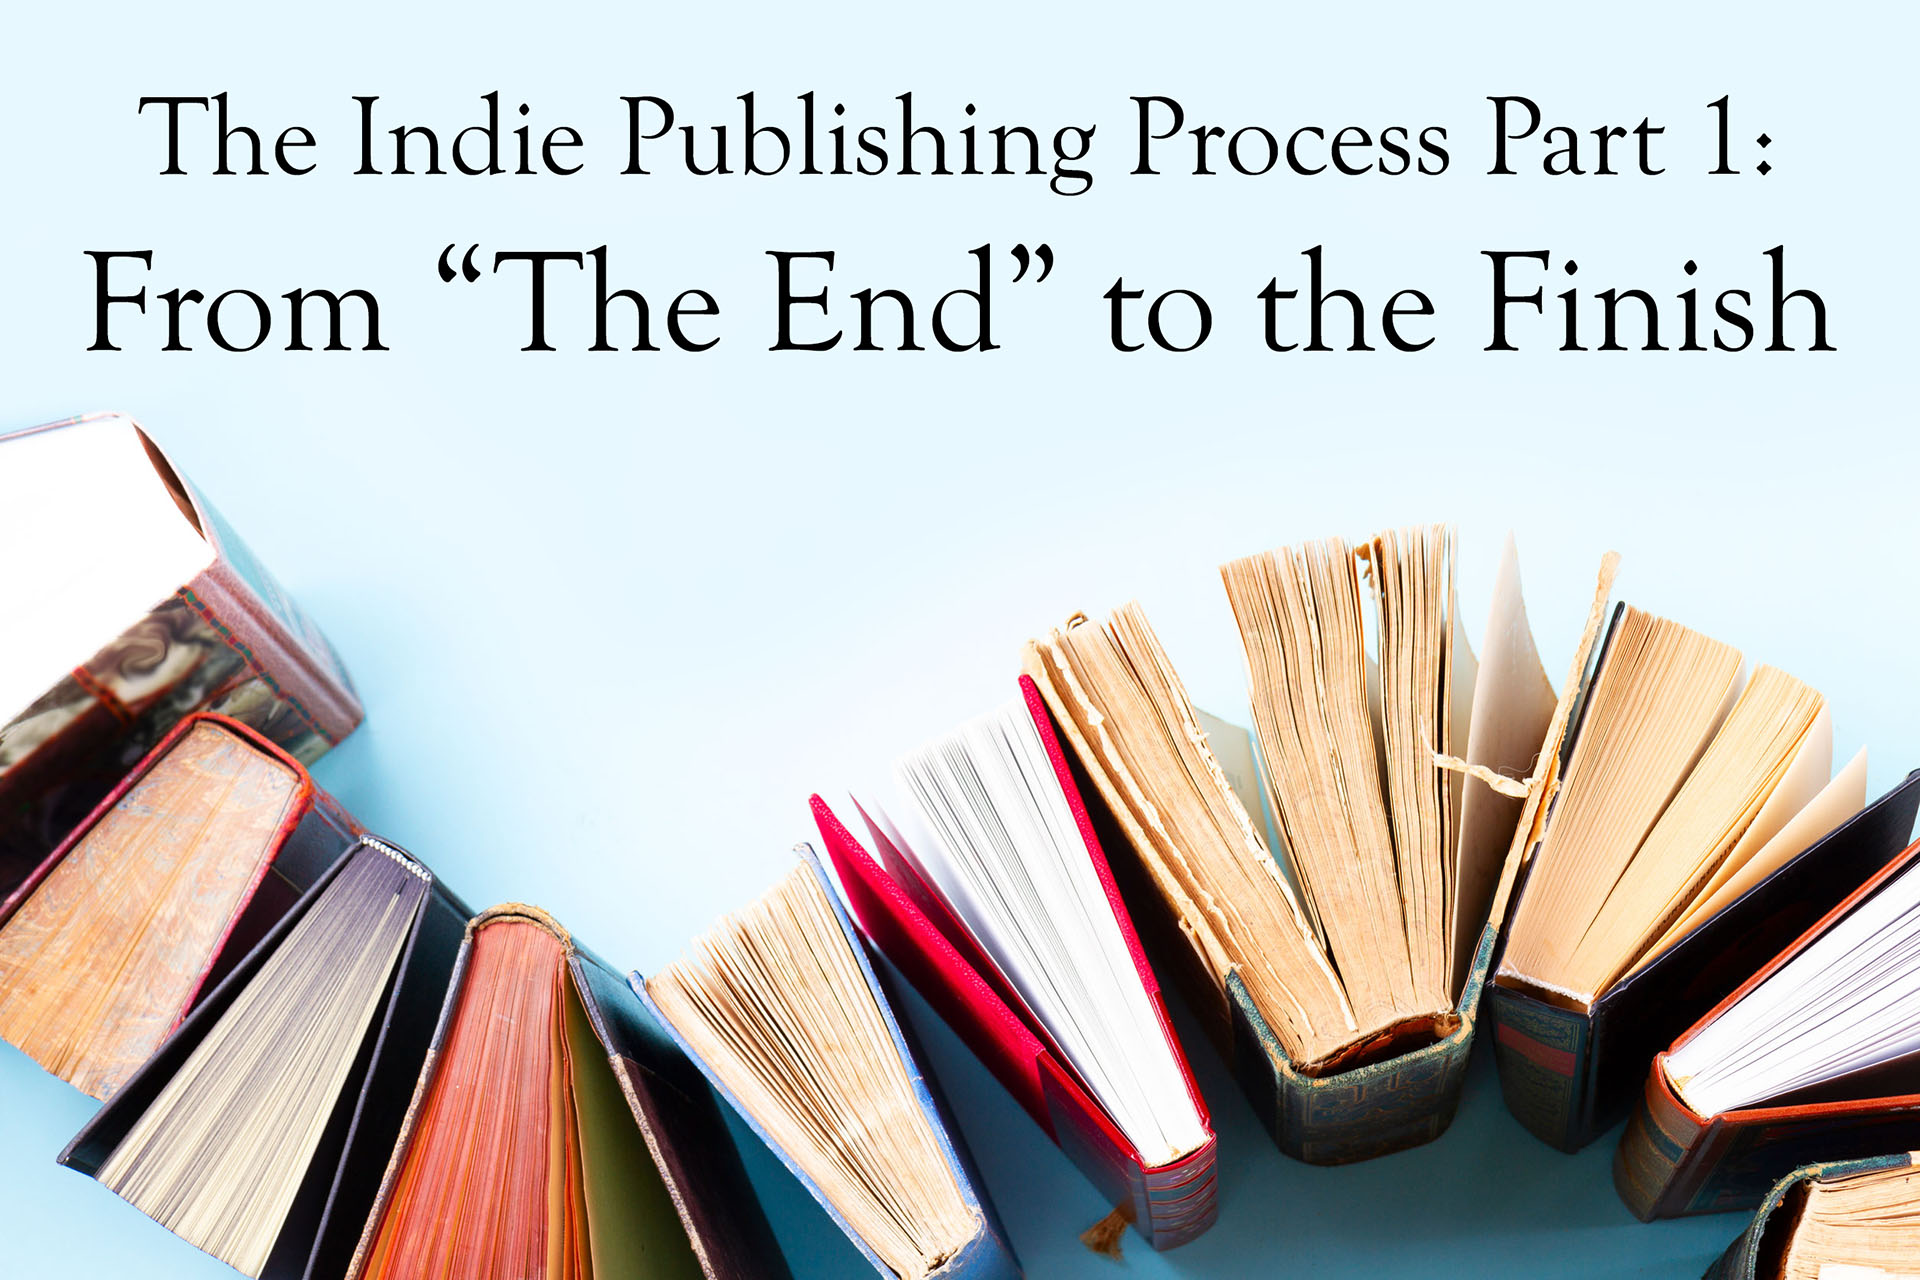 The Indie Publishing Process Part 1 - Writing tips for self-published and indie authors from editor and writer Talena Winters.